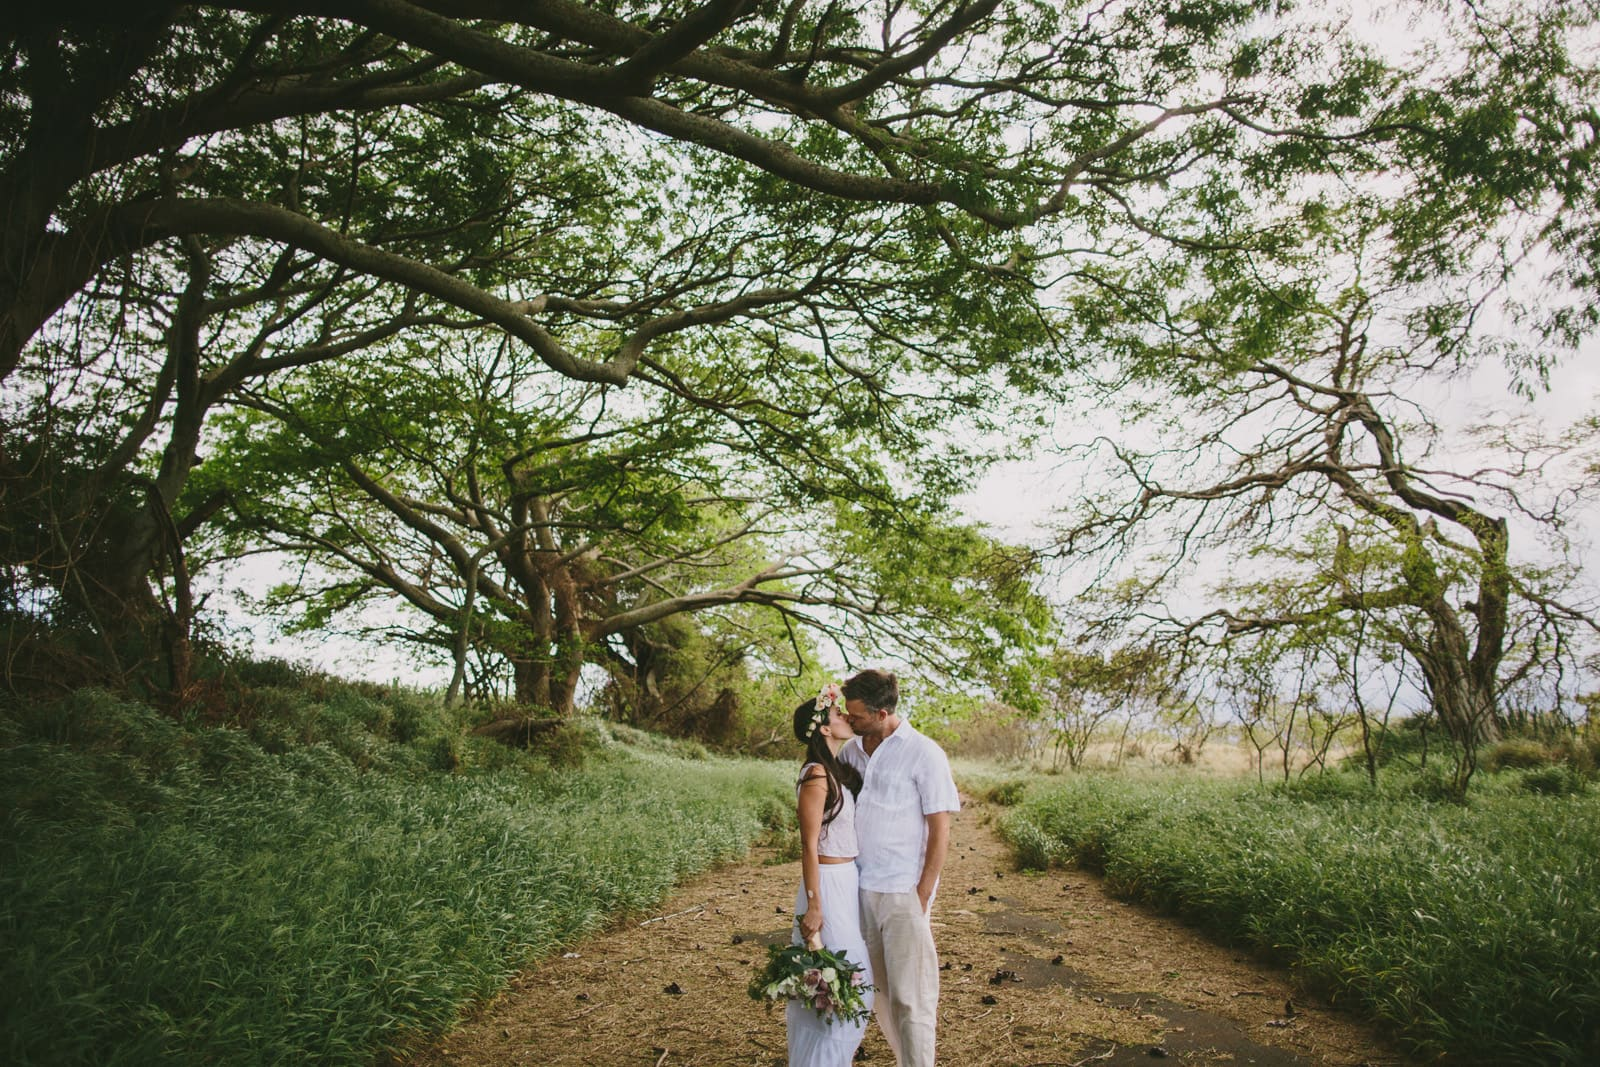 Maui_Wedding_Wailea_Kapalua_Hawaii_Photographer_030